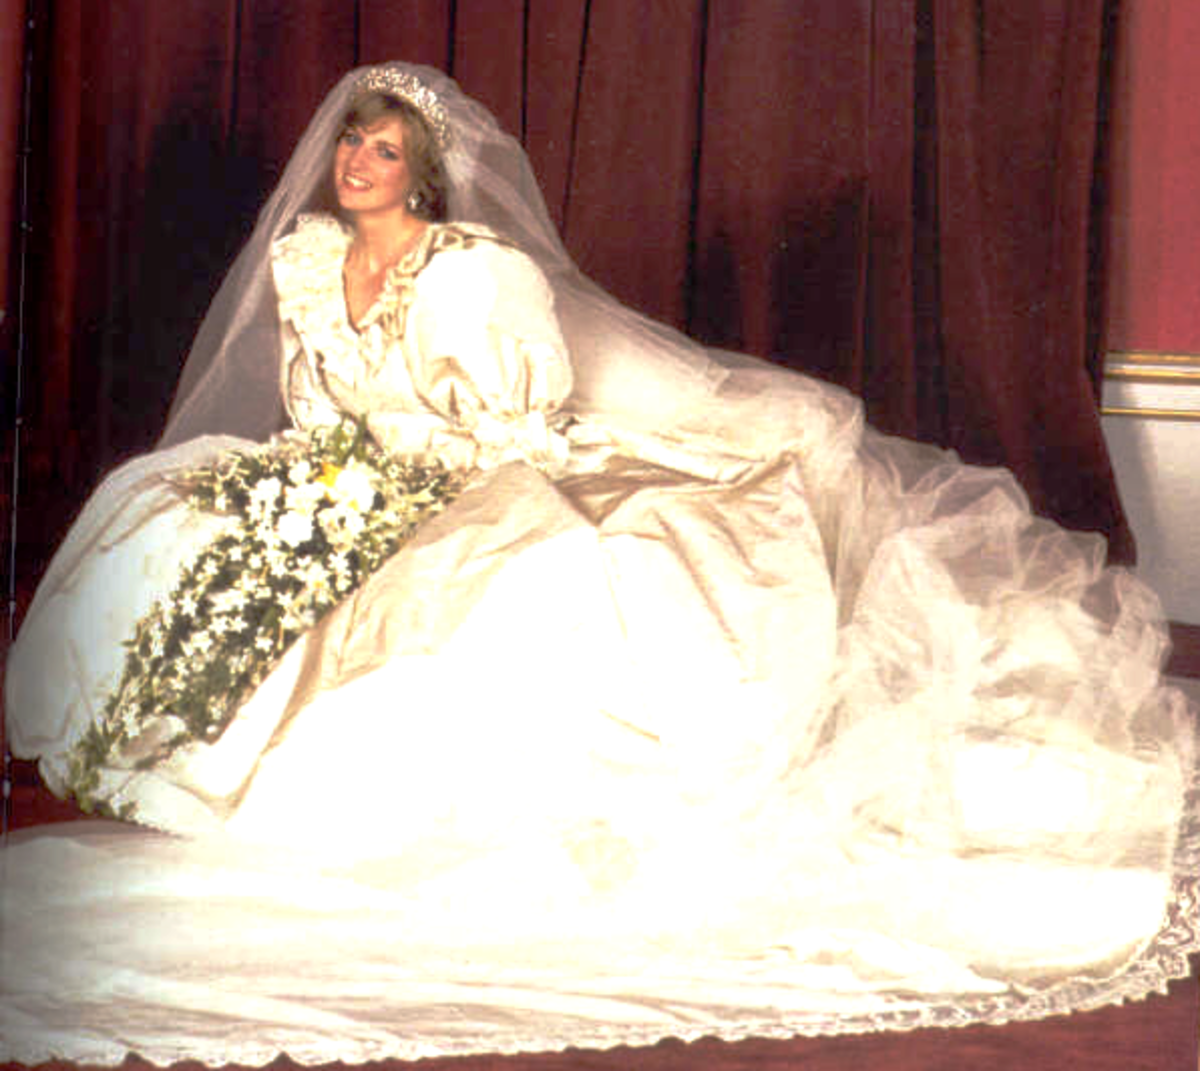 Photo featuring the front of Princess Diana's wedding gown, July, 1981.  Ideas for a Nostalgia Pinboard: Diana Spencer: The First of The Fairy Tale Weddings OR  Royal Brides of Britain